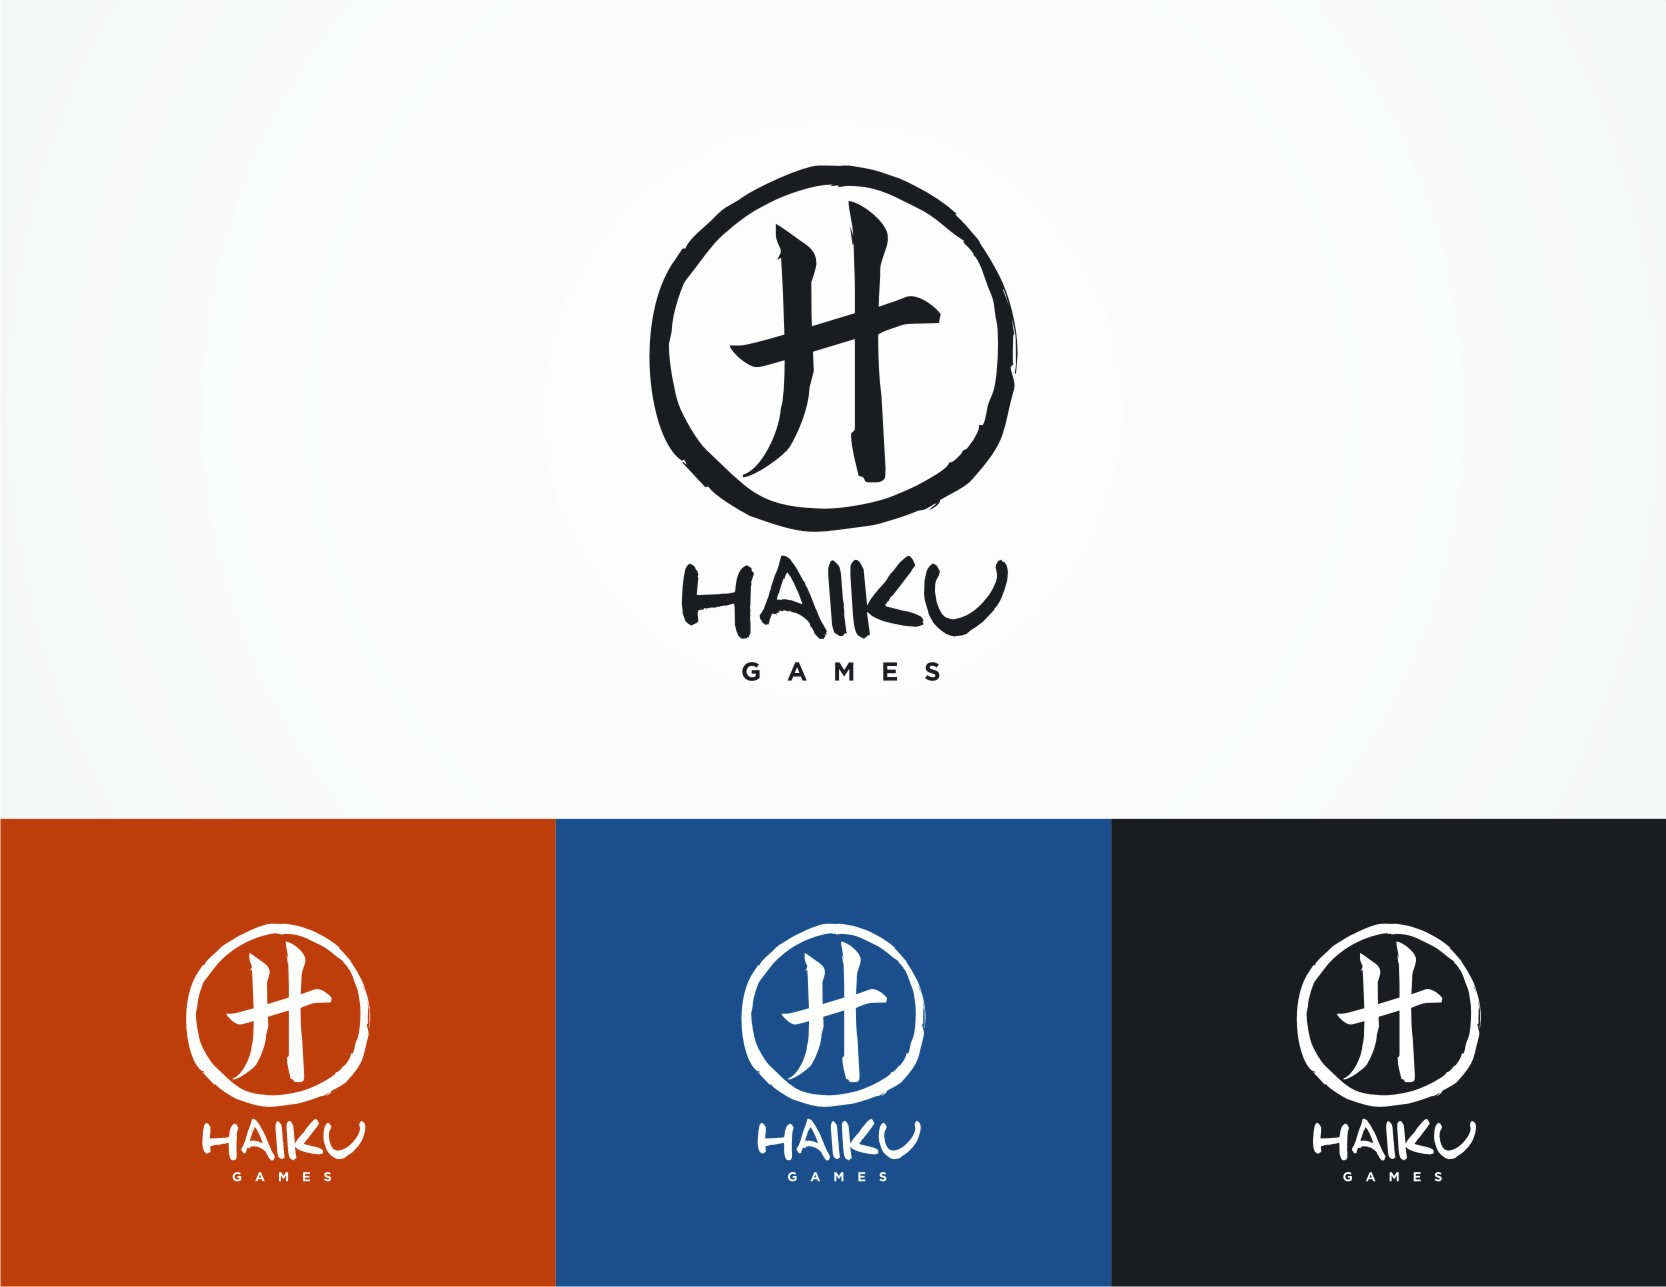 Create a simple and beautiful logo for Haiku Games, a mobile game company